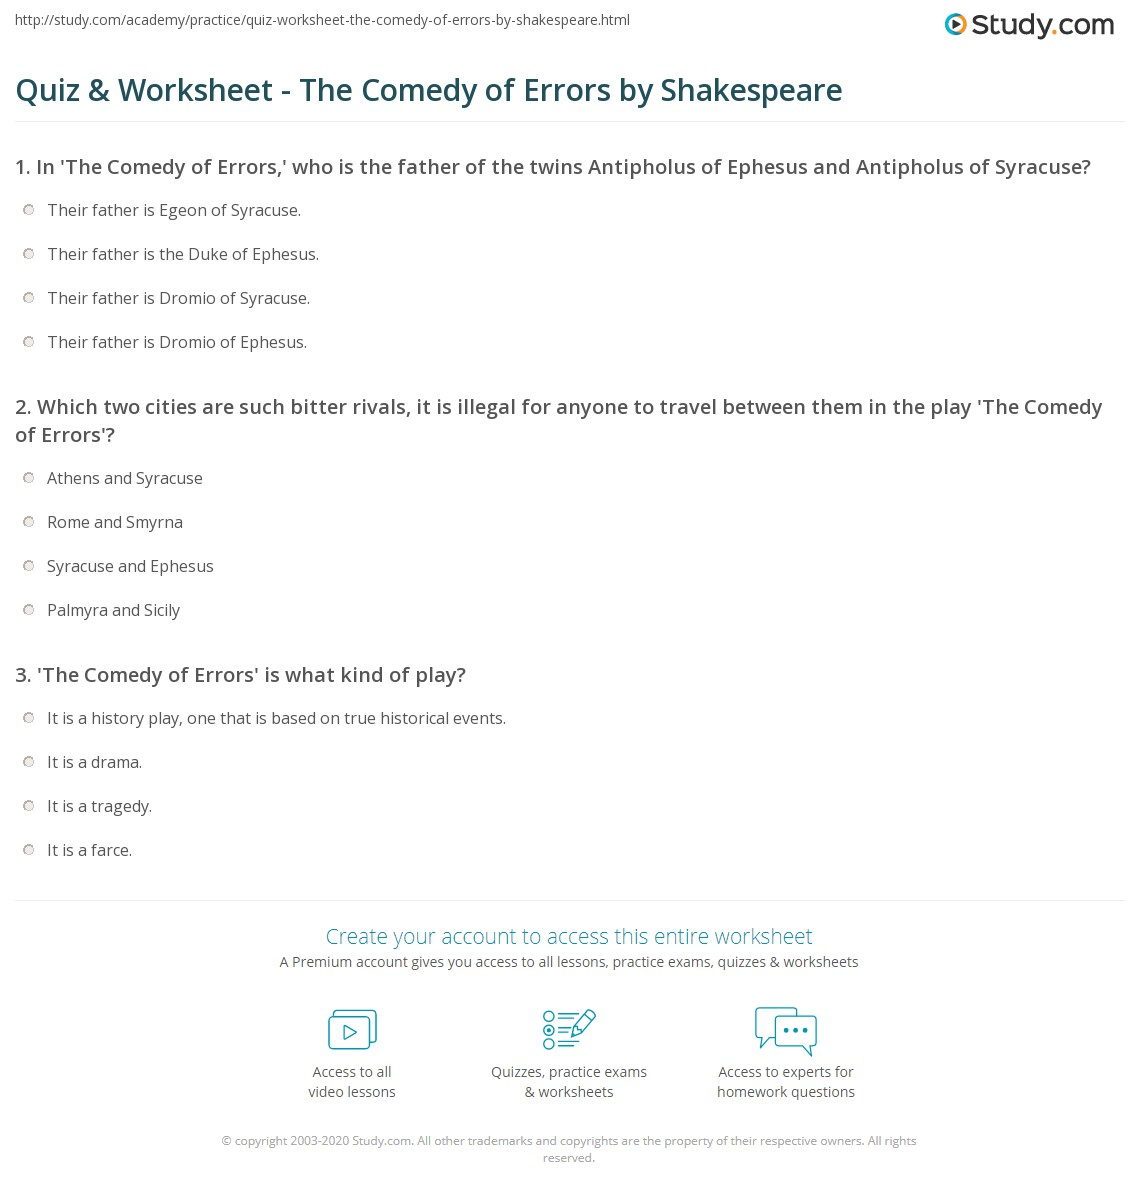 Comedy Of Errors Worksheet : Quiz worksheet the comedy of errors by shakespeare